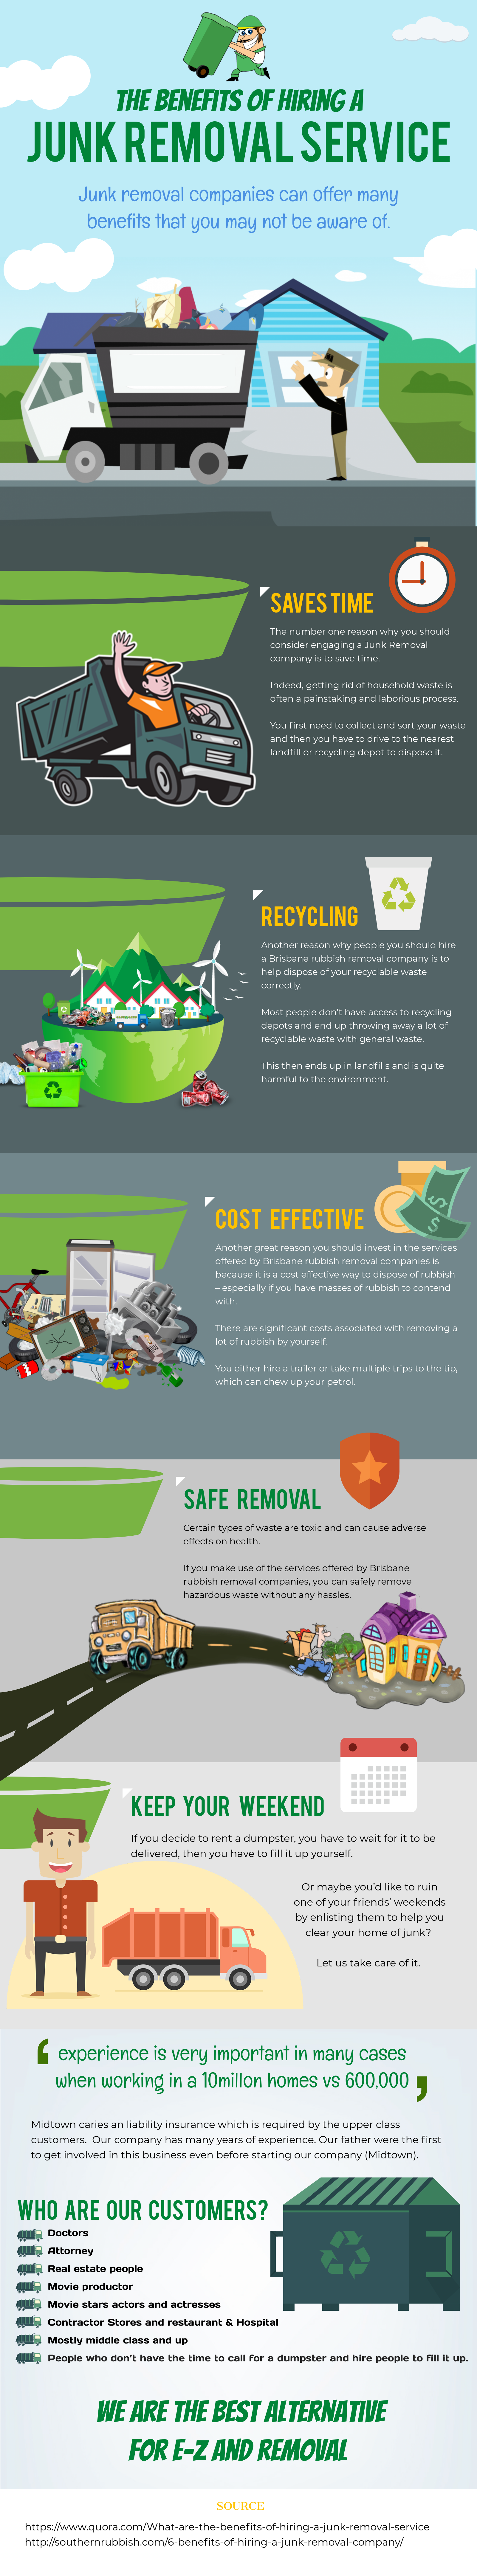 The Benefits Of Hiring A Junk Removal Service